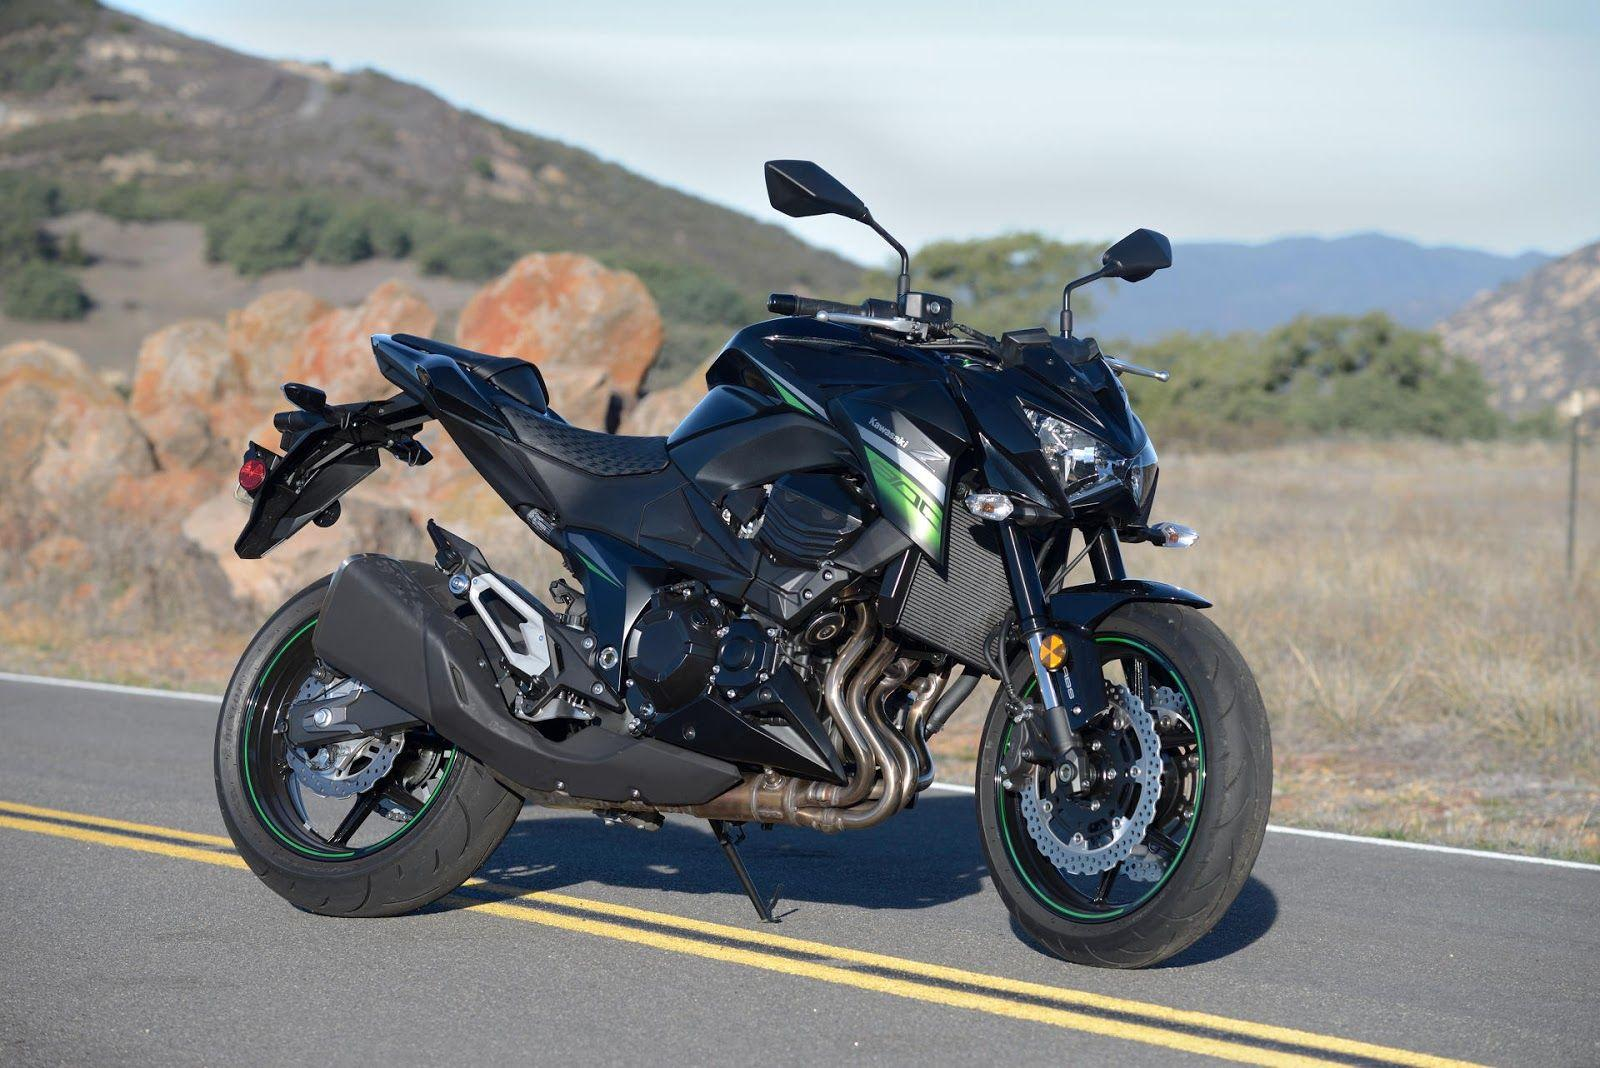 Kawasaki Z800 Wallpapers